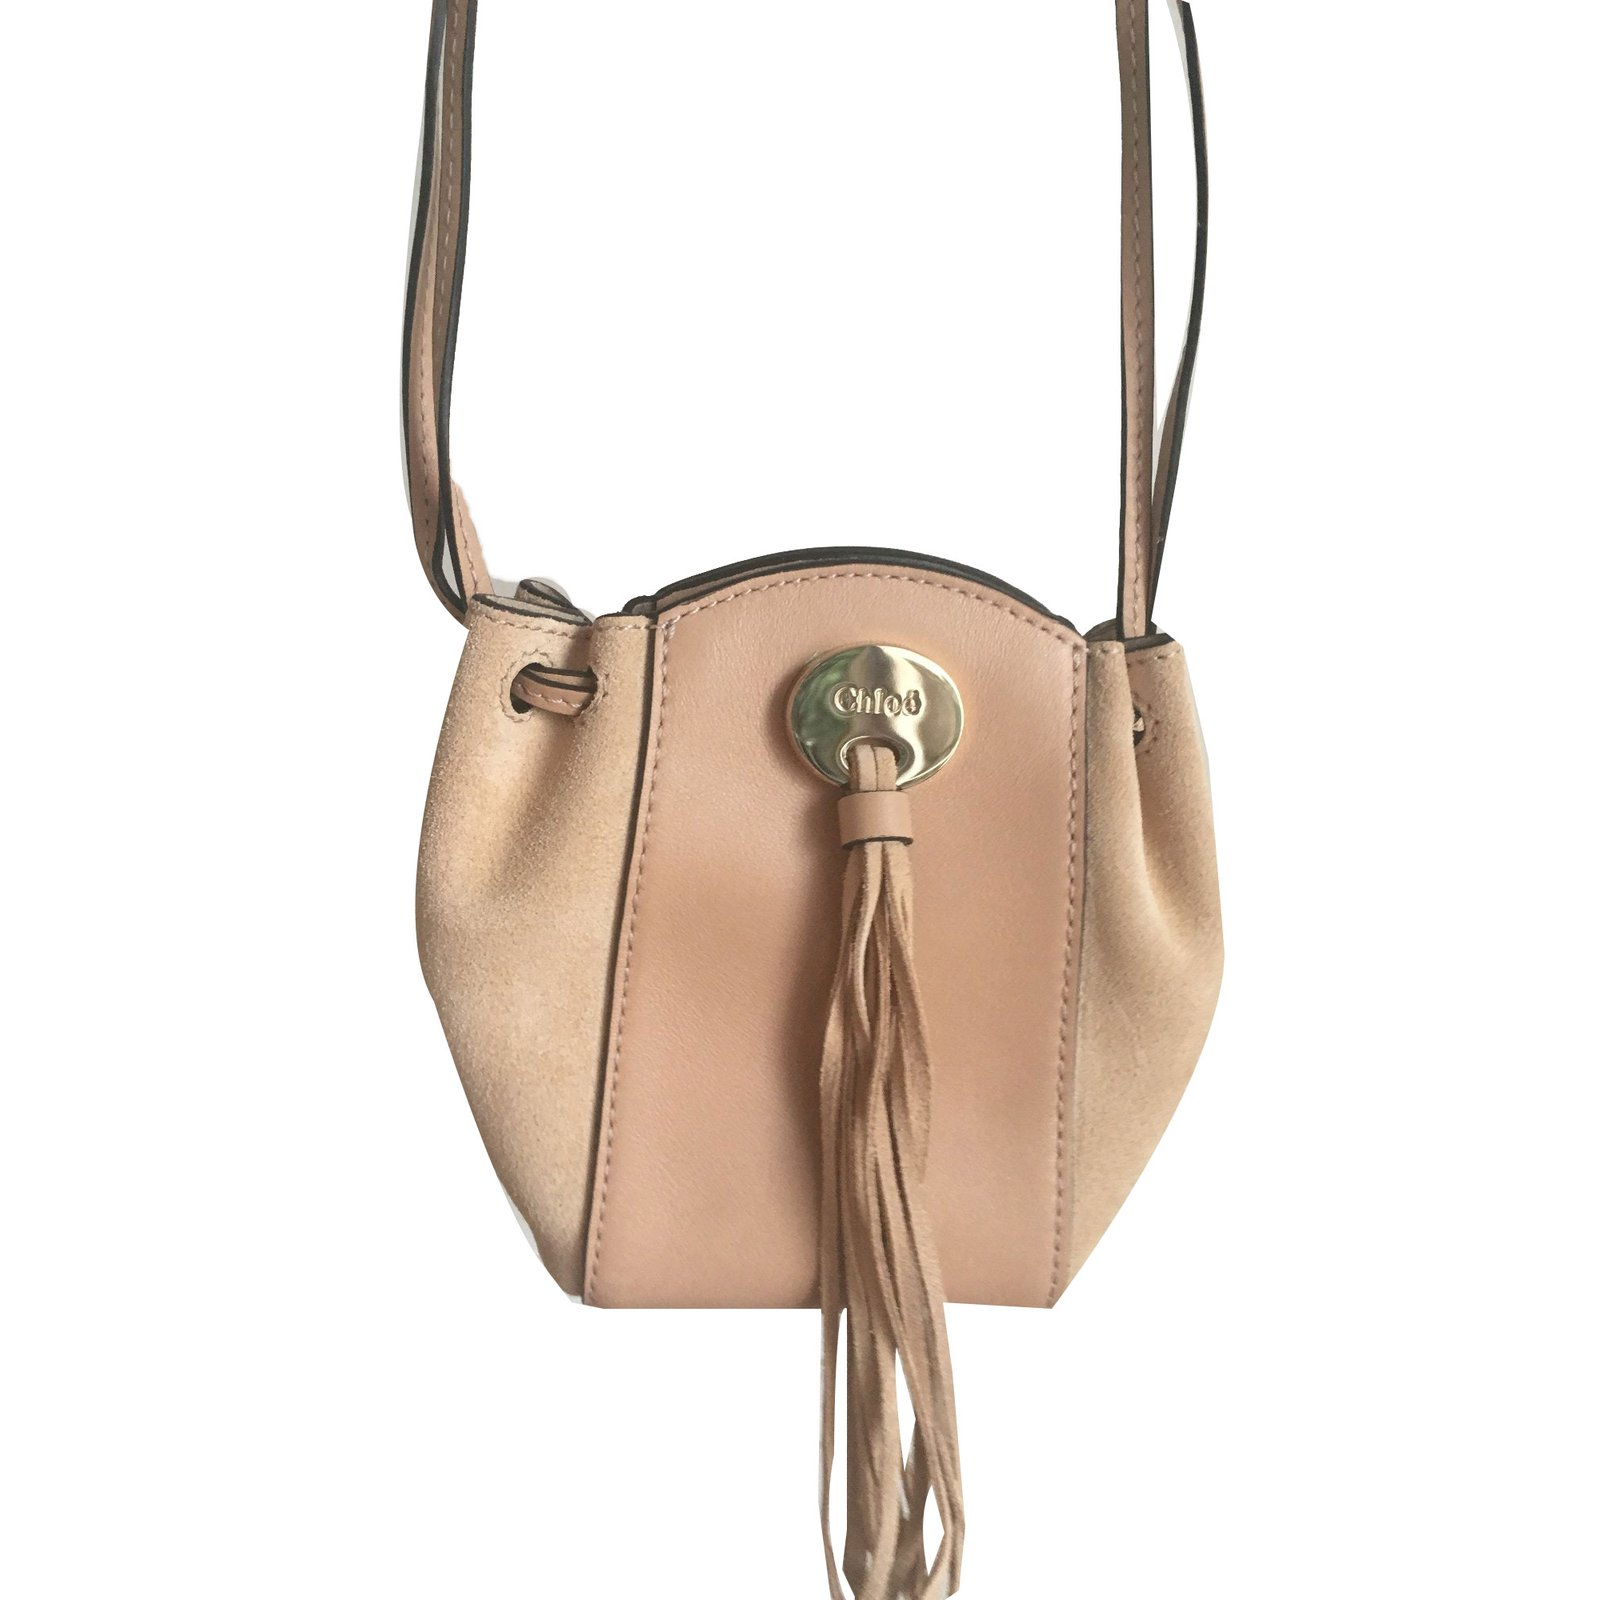 4a82ad688 Chloé Mini bag Handbags Leather Beige ref.72353 - Joli Closet